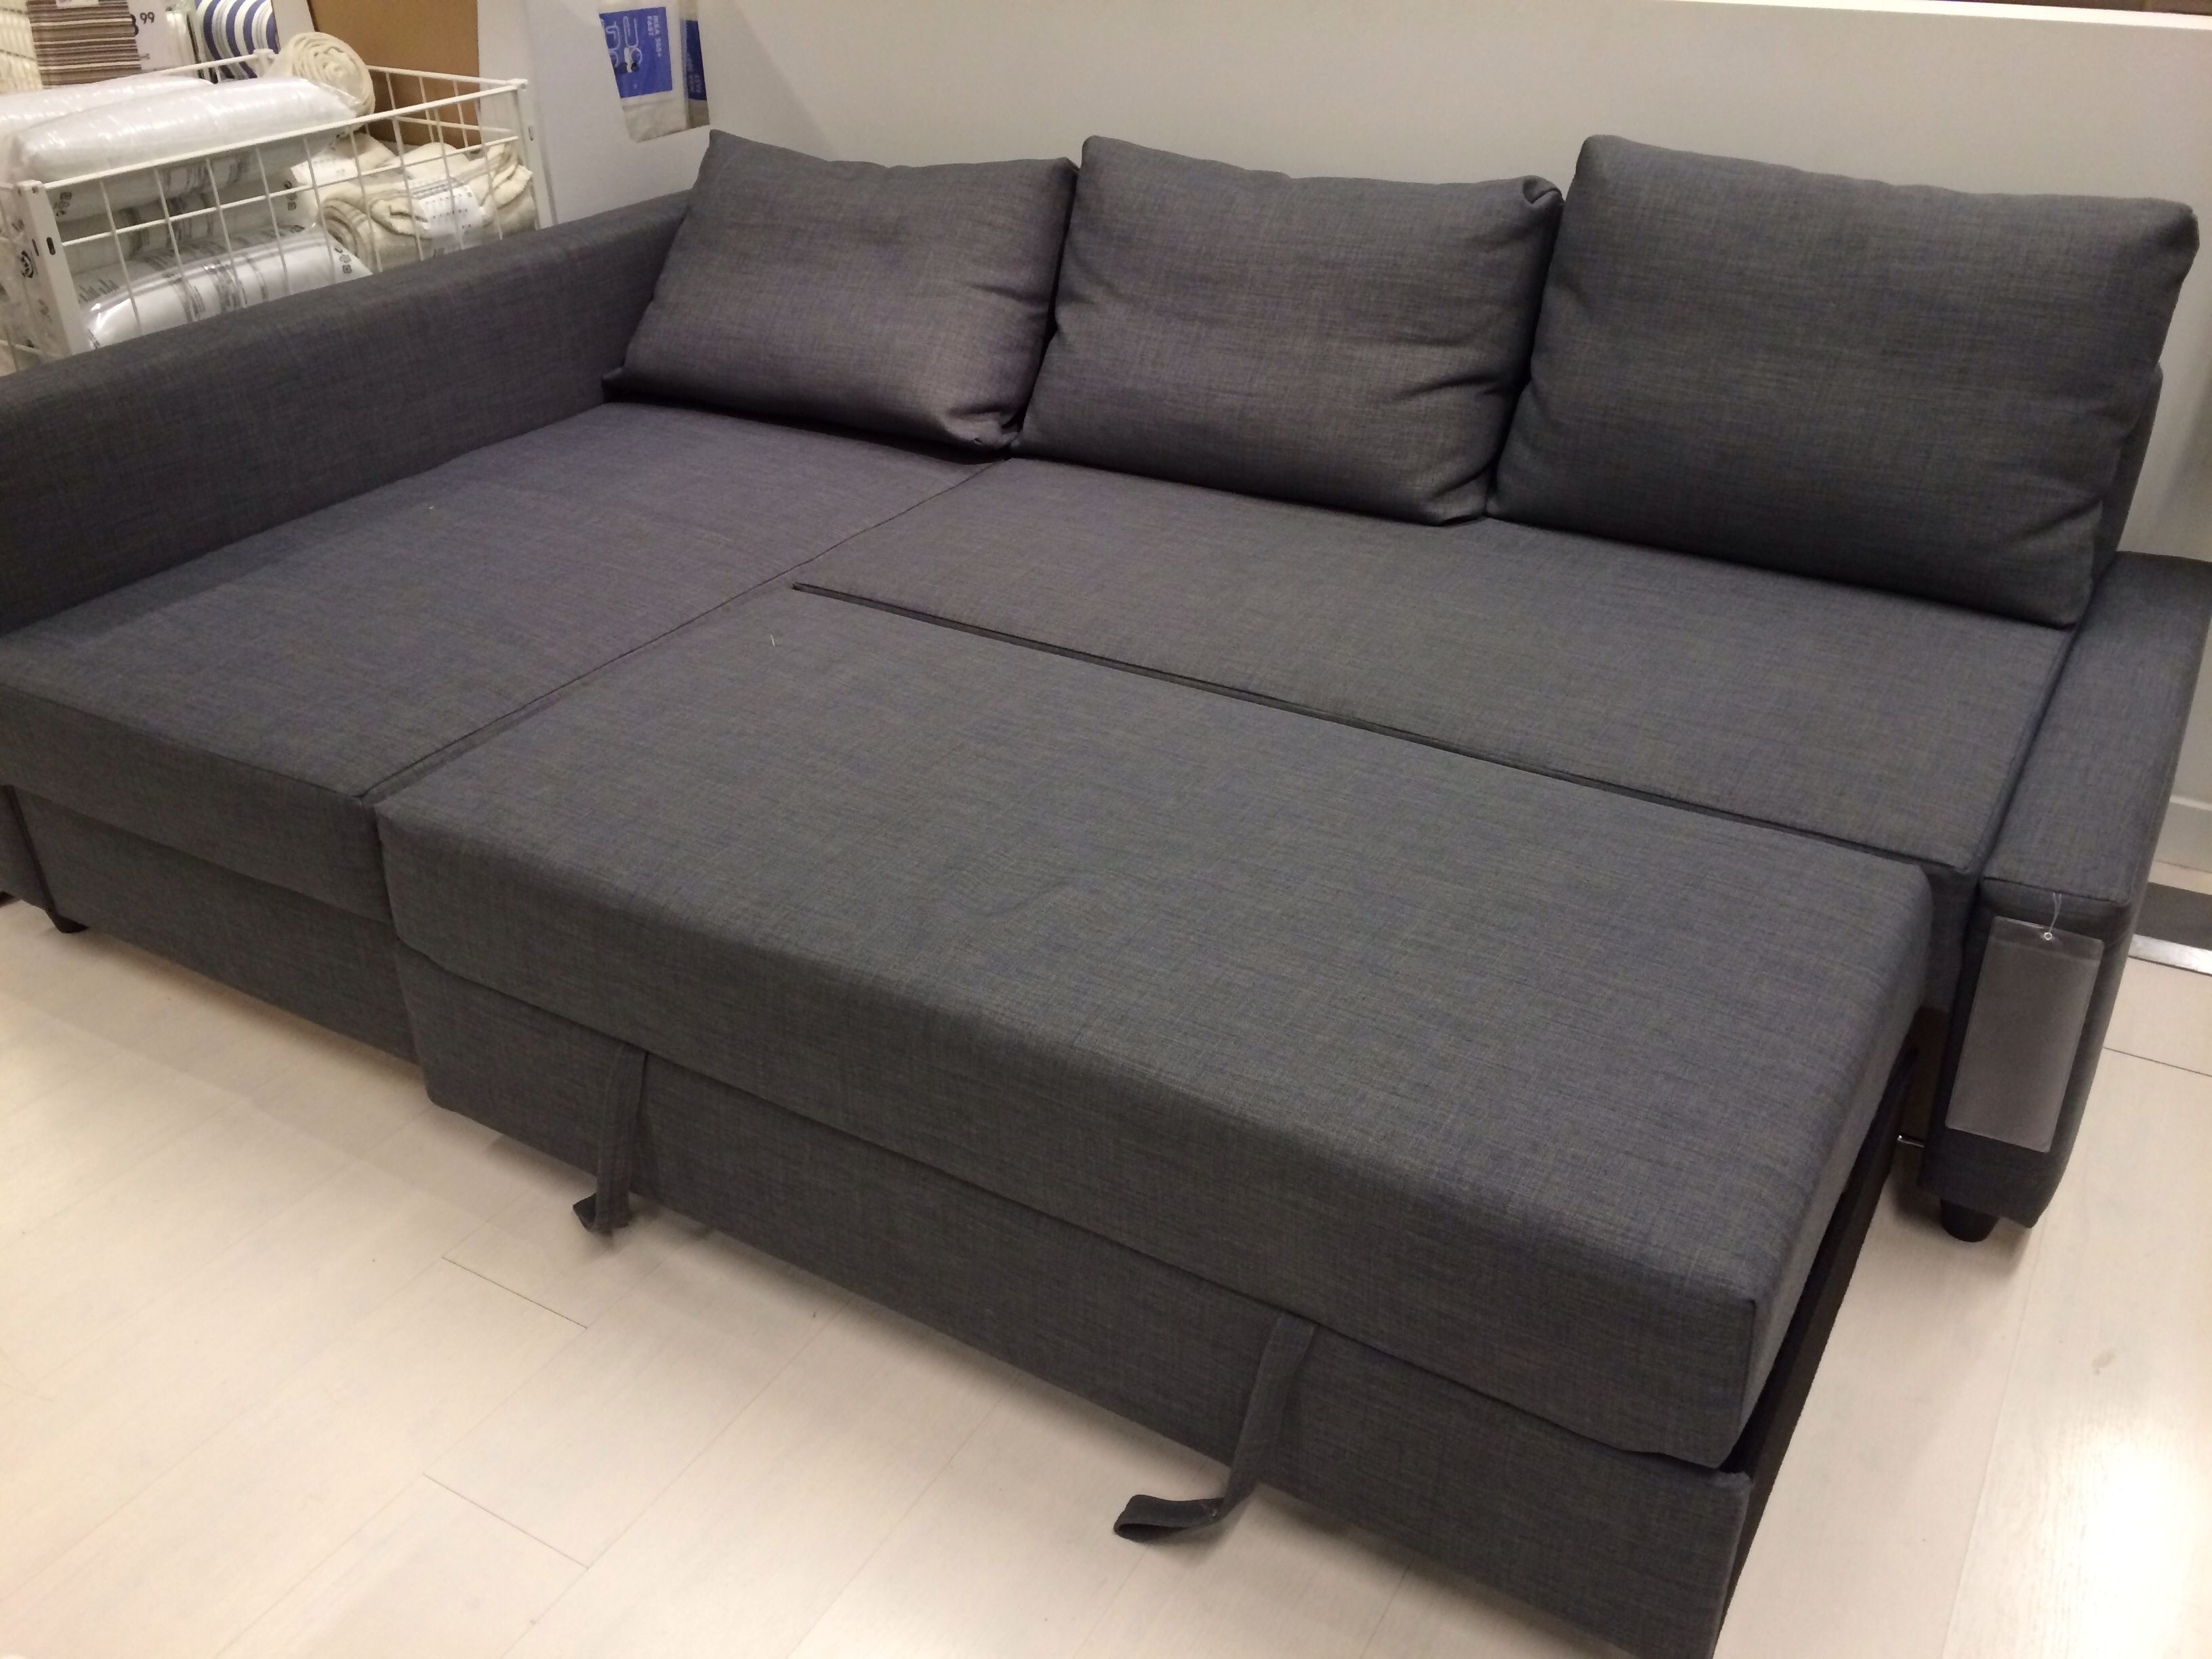 Bettsofa Ikea Friheten Friheten Corner Sofa Bed Skiftebo Dark Grey Ikea For